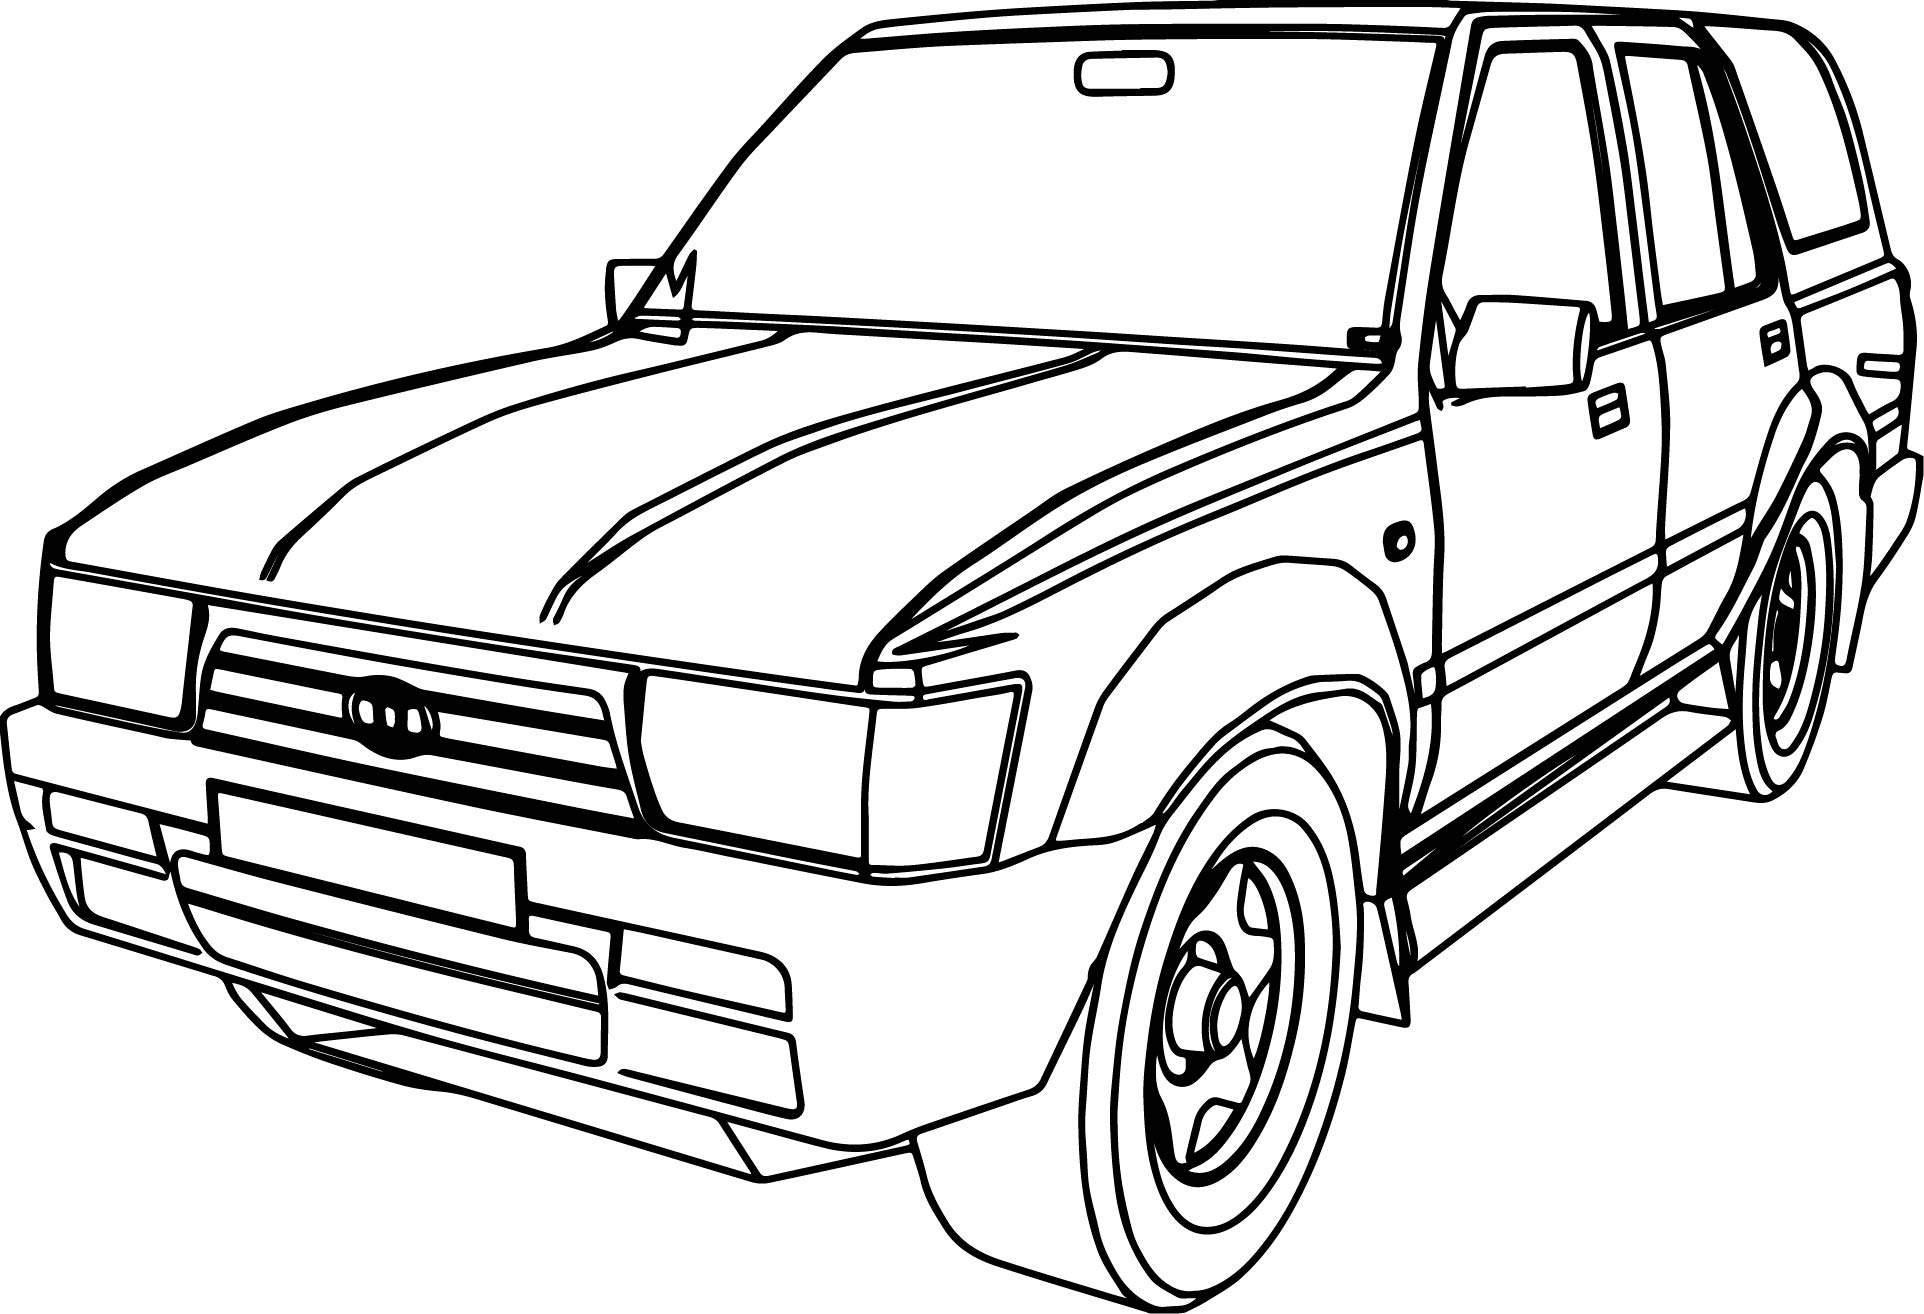 Jeep Wagoneer Coloring Pages Sketch Coloring Page